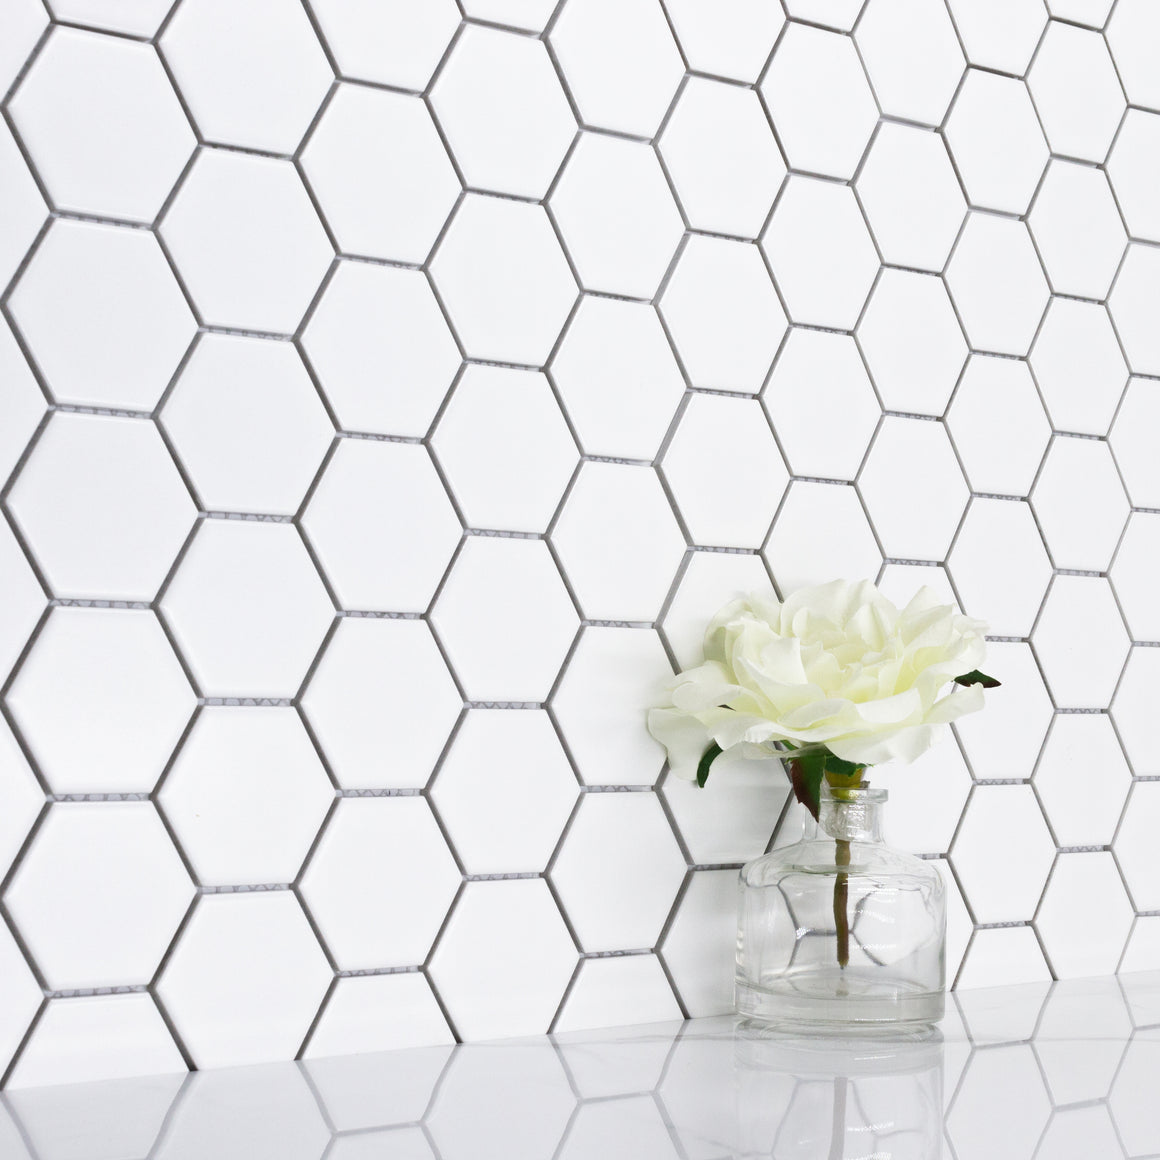 "Hexa-Dot 2"" Hexagon White bold matte porcelain mosaic for residential and commercial bathroom and kitchen floor and wall imported from China, Anatolia available from TilesInspired Canada's Online Tile Store delivering across Ontario and Quebec, including Toronto, Montreal, Ottawa, London, Windsor, Kitchener, Muskoka, Barrie, Kingston, Hamilton, and Niagara decoration idea"